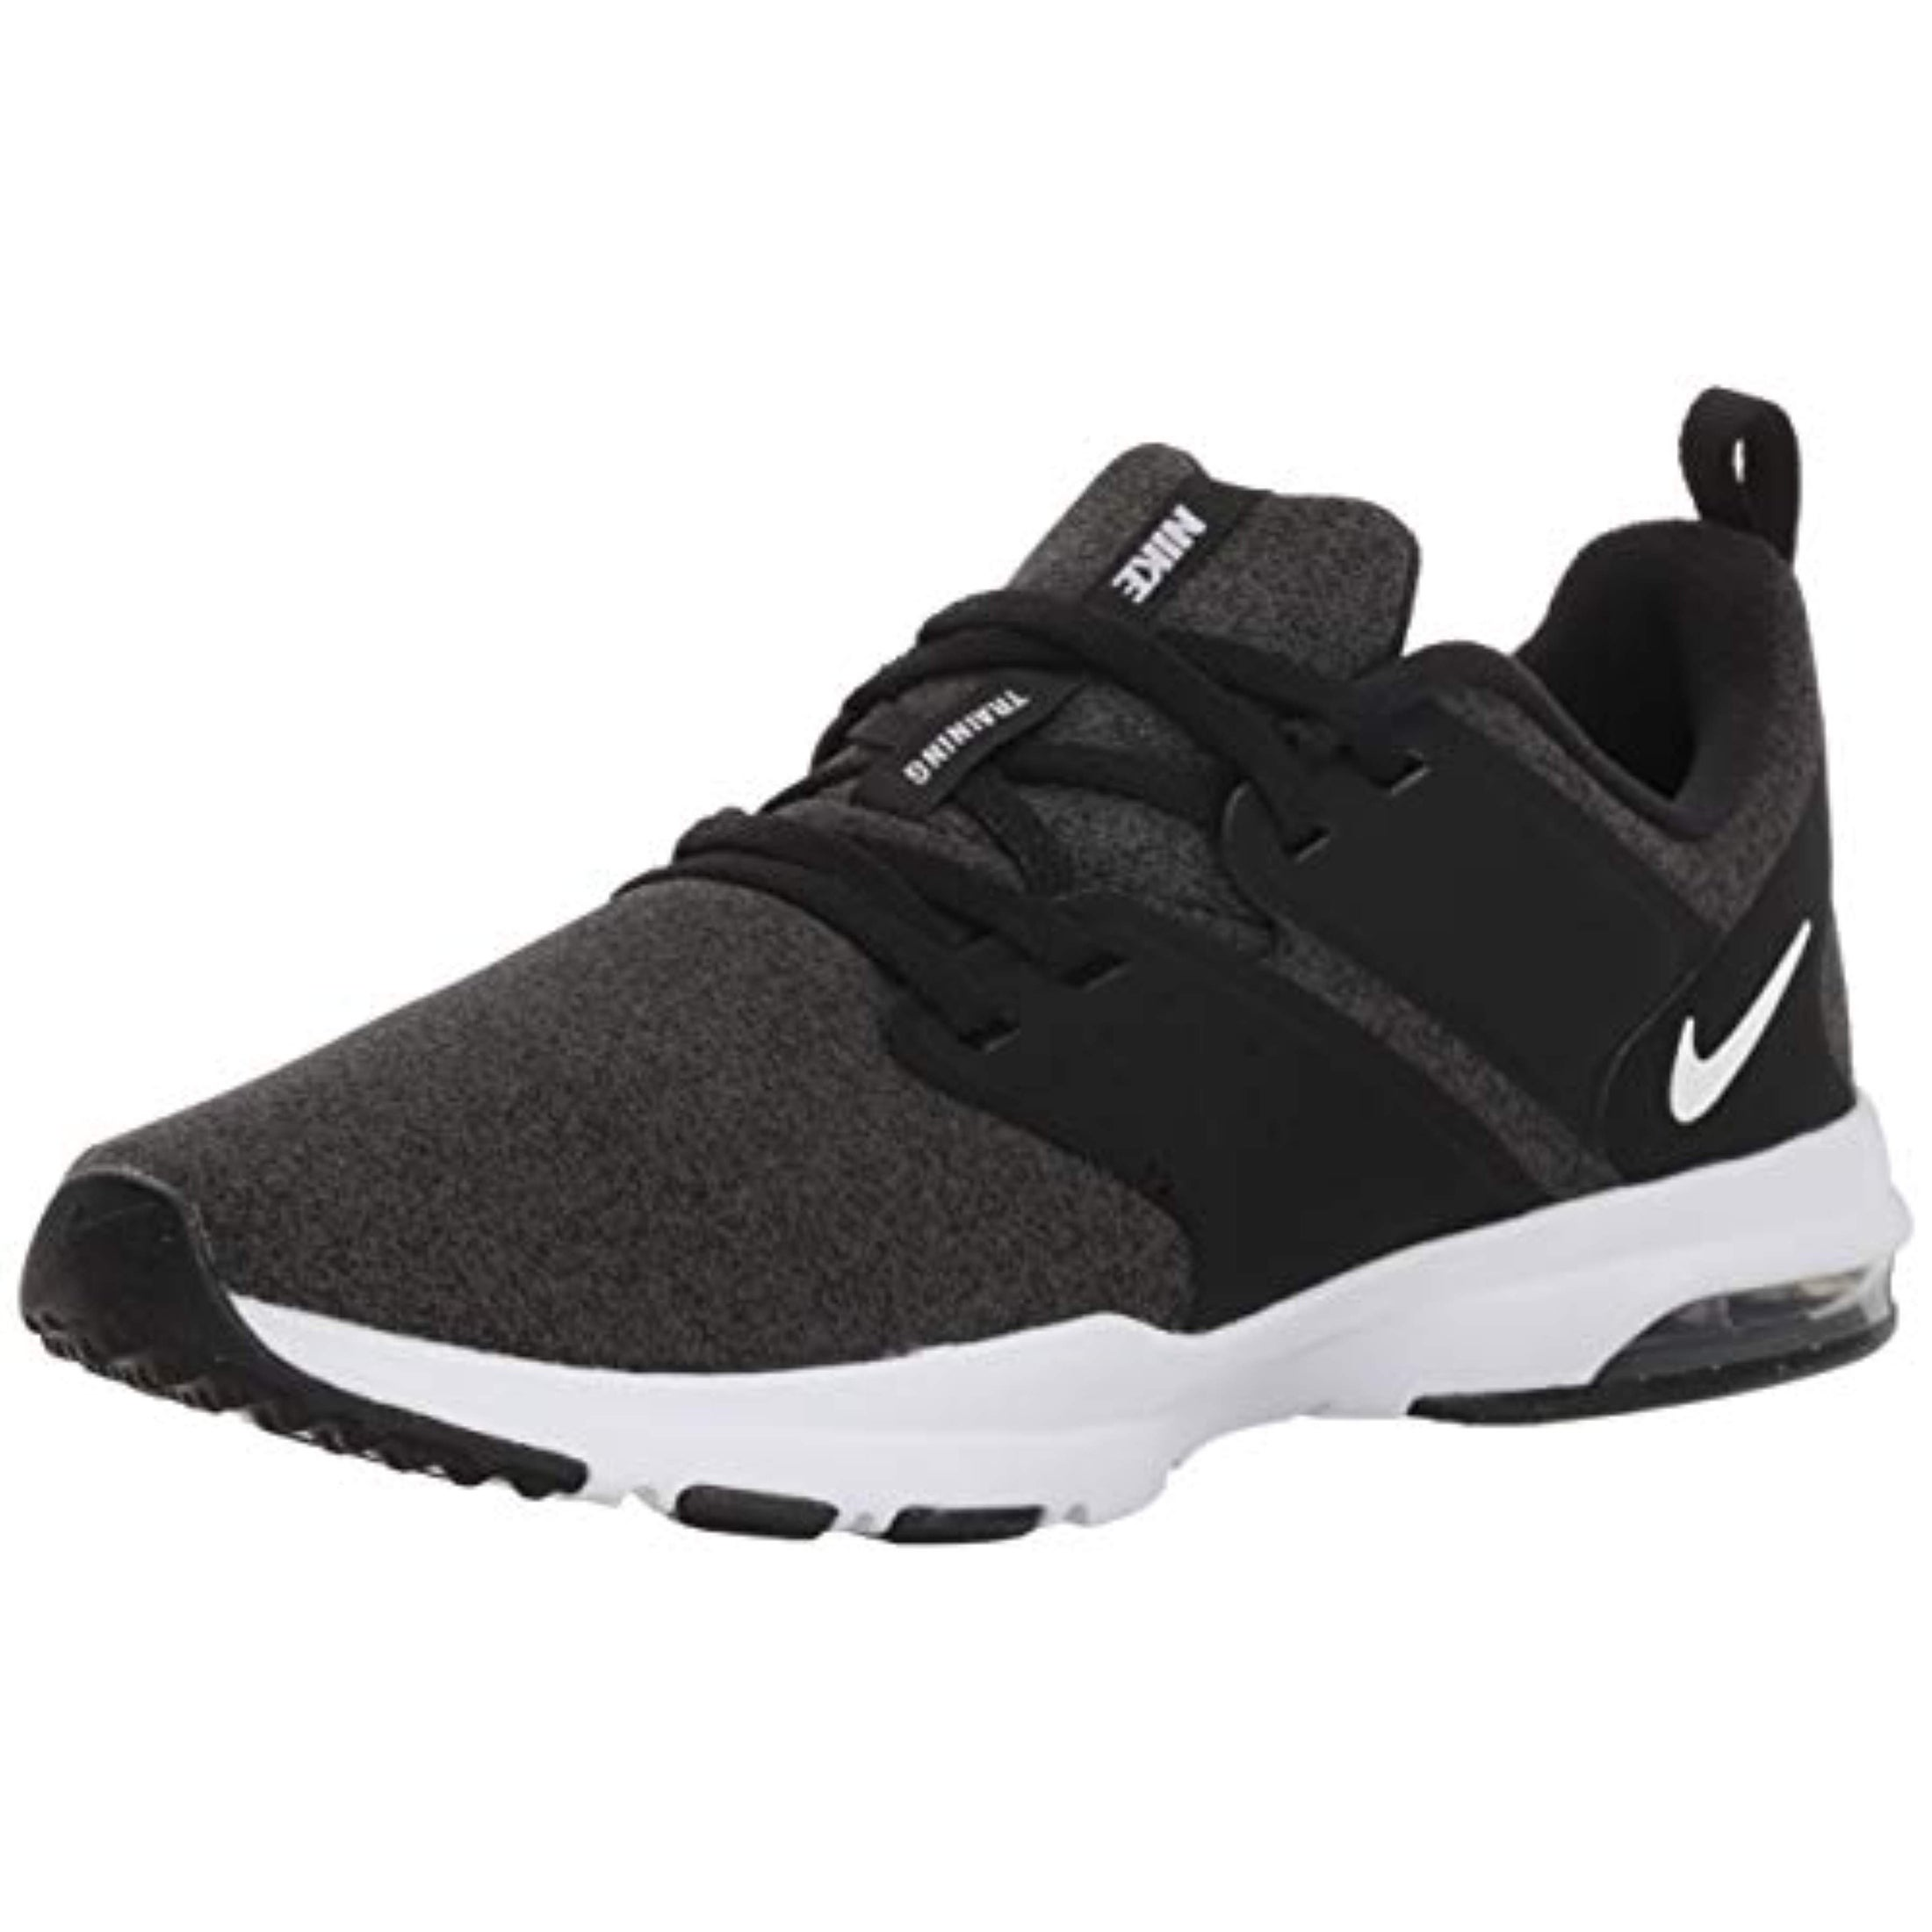 8198a0a3c5 Buy Size 9.5 Nike Women's Athletic Shoes Online at Overstock | Our Best  Women's Shoes Deals